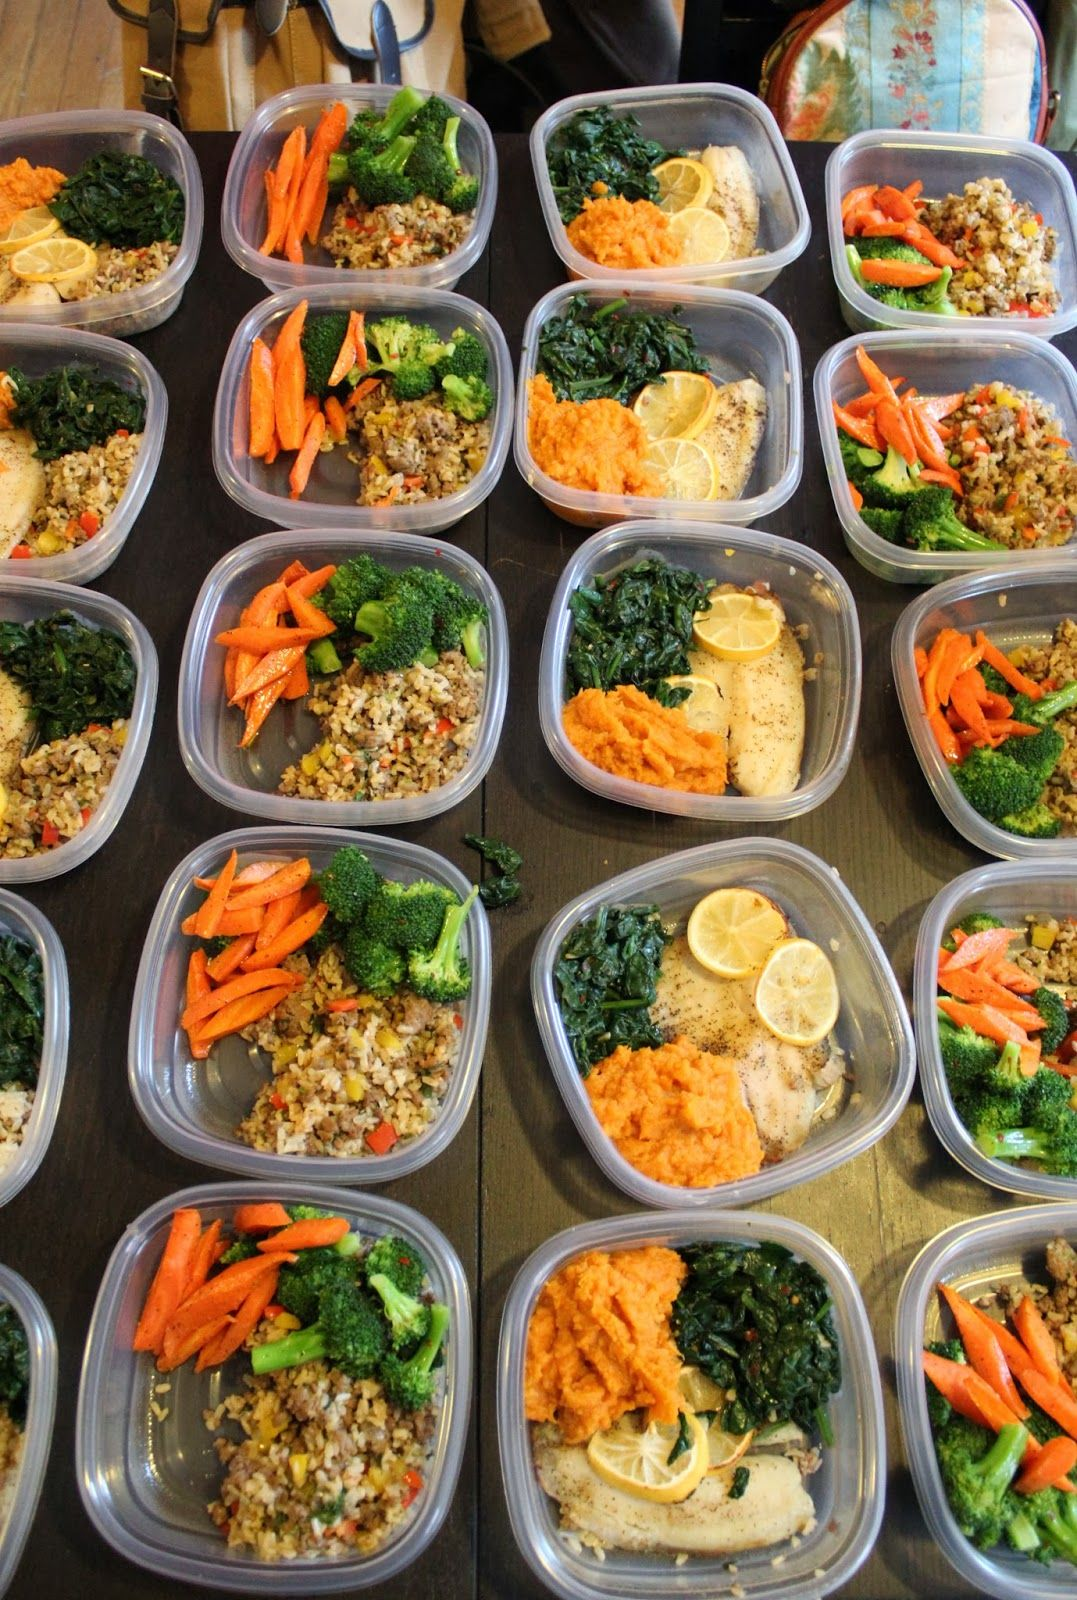 Mealprep expert tips for easy healthy and affordable meals all mealprep expert tips for easy healthy and affordable meals all week long this forumfinder Choice Image